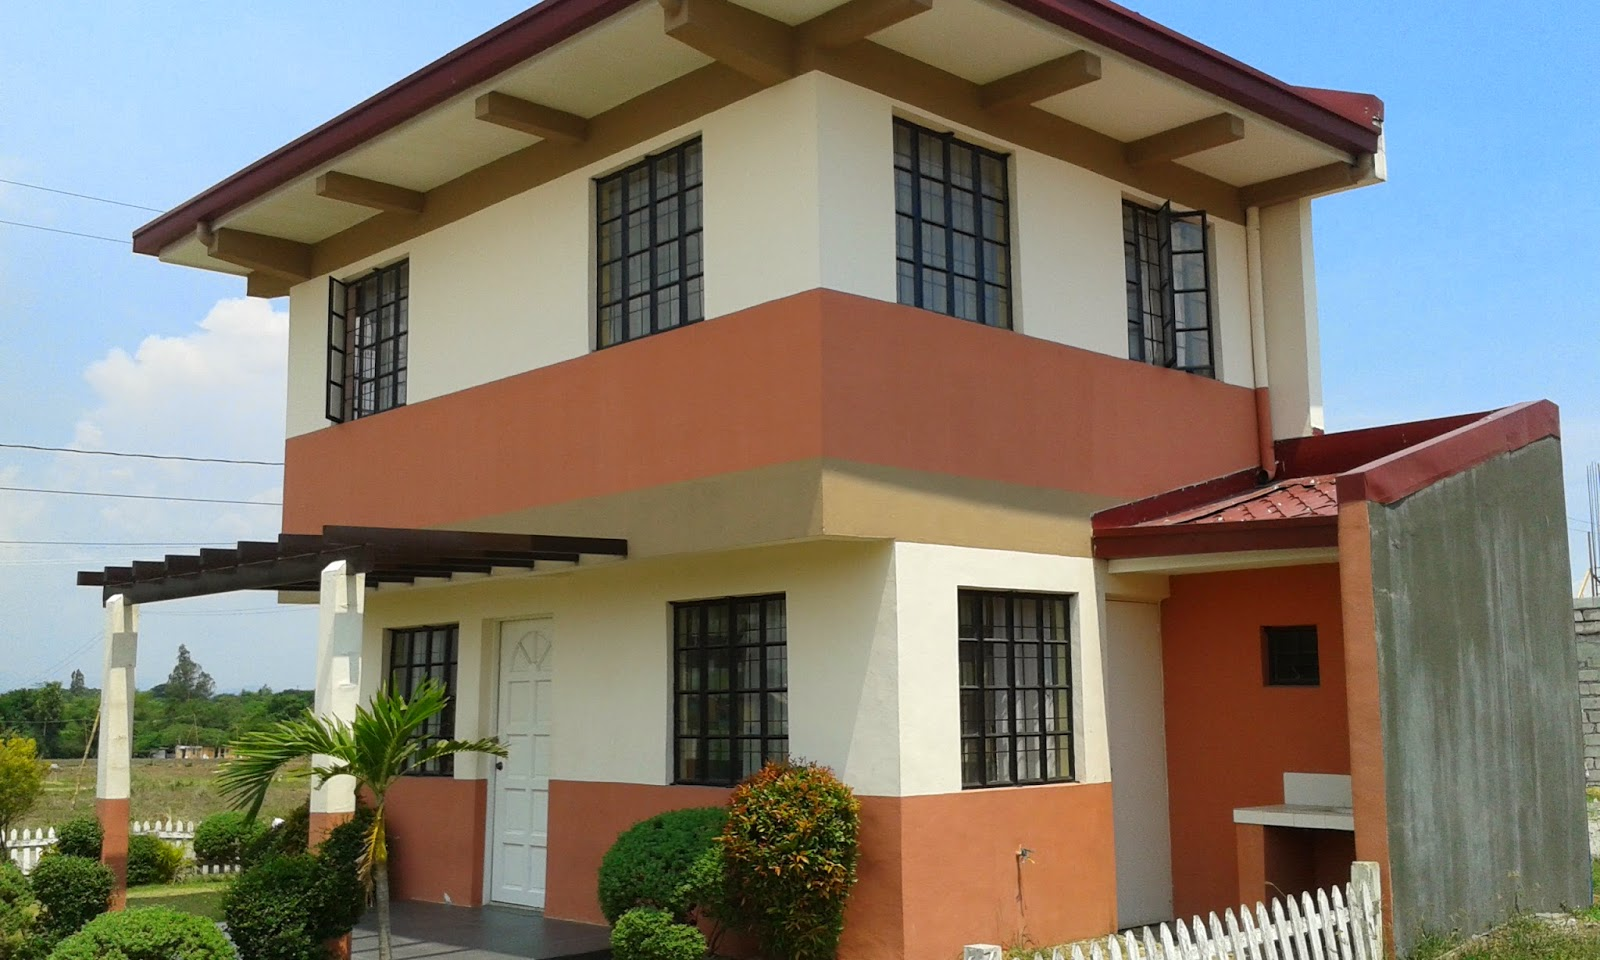 Bulacan homes affordable house and lot sta maria bulacan for How to build a model pueblo house